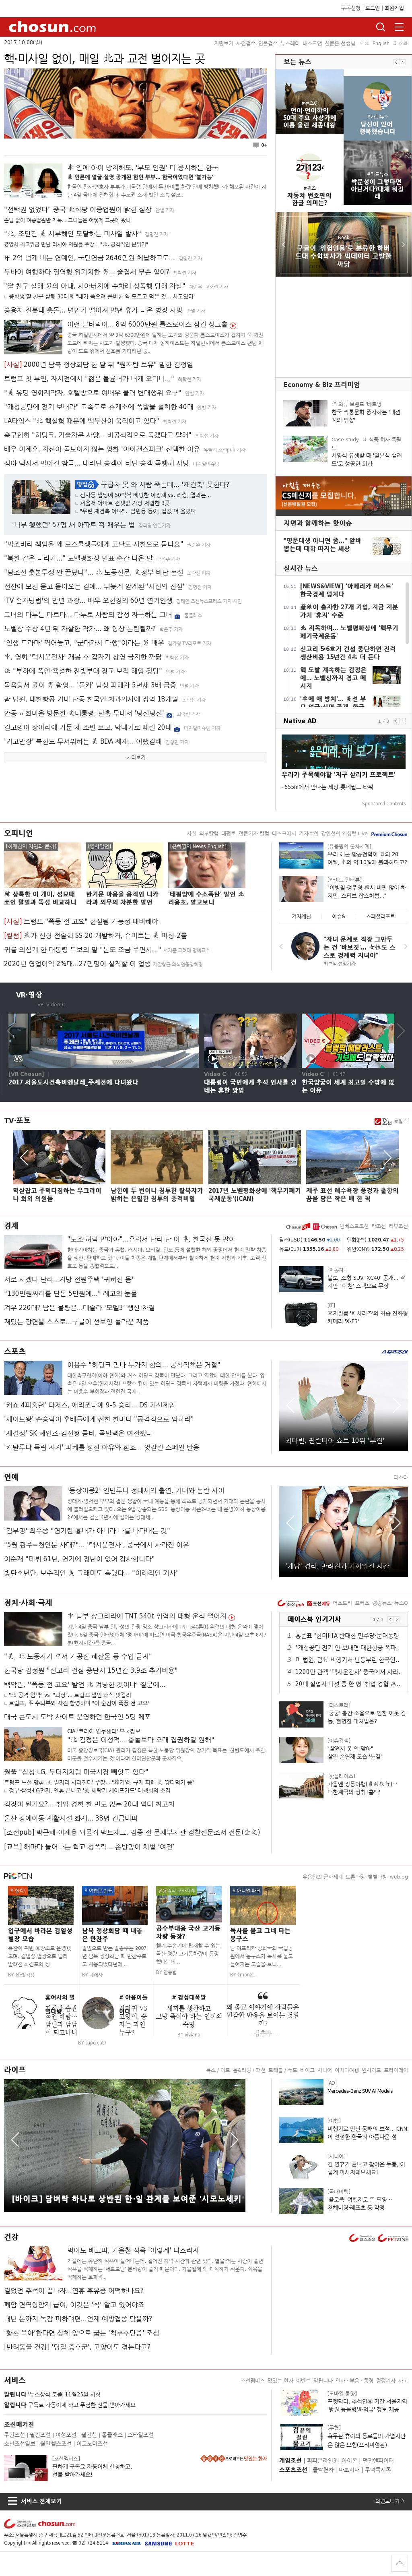 chosun.com at Saturday Oct. 7, 2017, 9:01 p.m. UTC